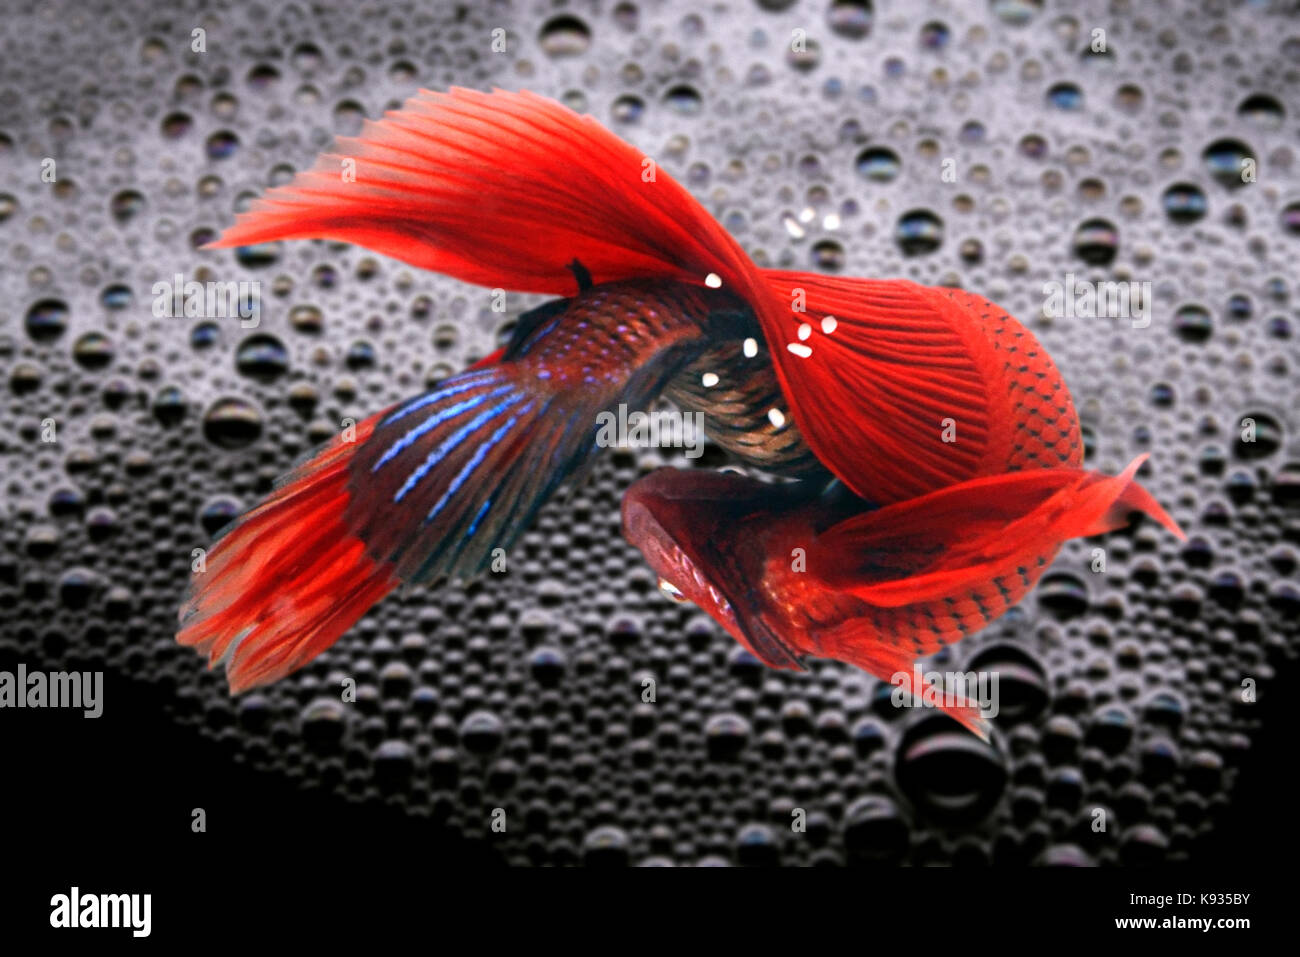 Siamese fighting fish, Betta splendens. Lower view of the couple breeding under the bubble nest at the water surface. - Stock Image